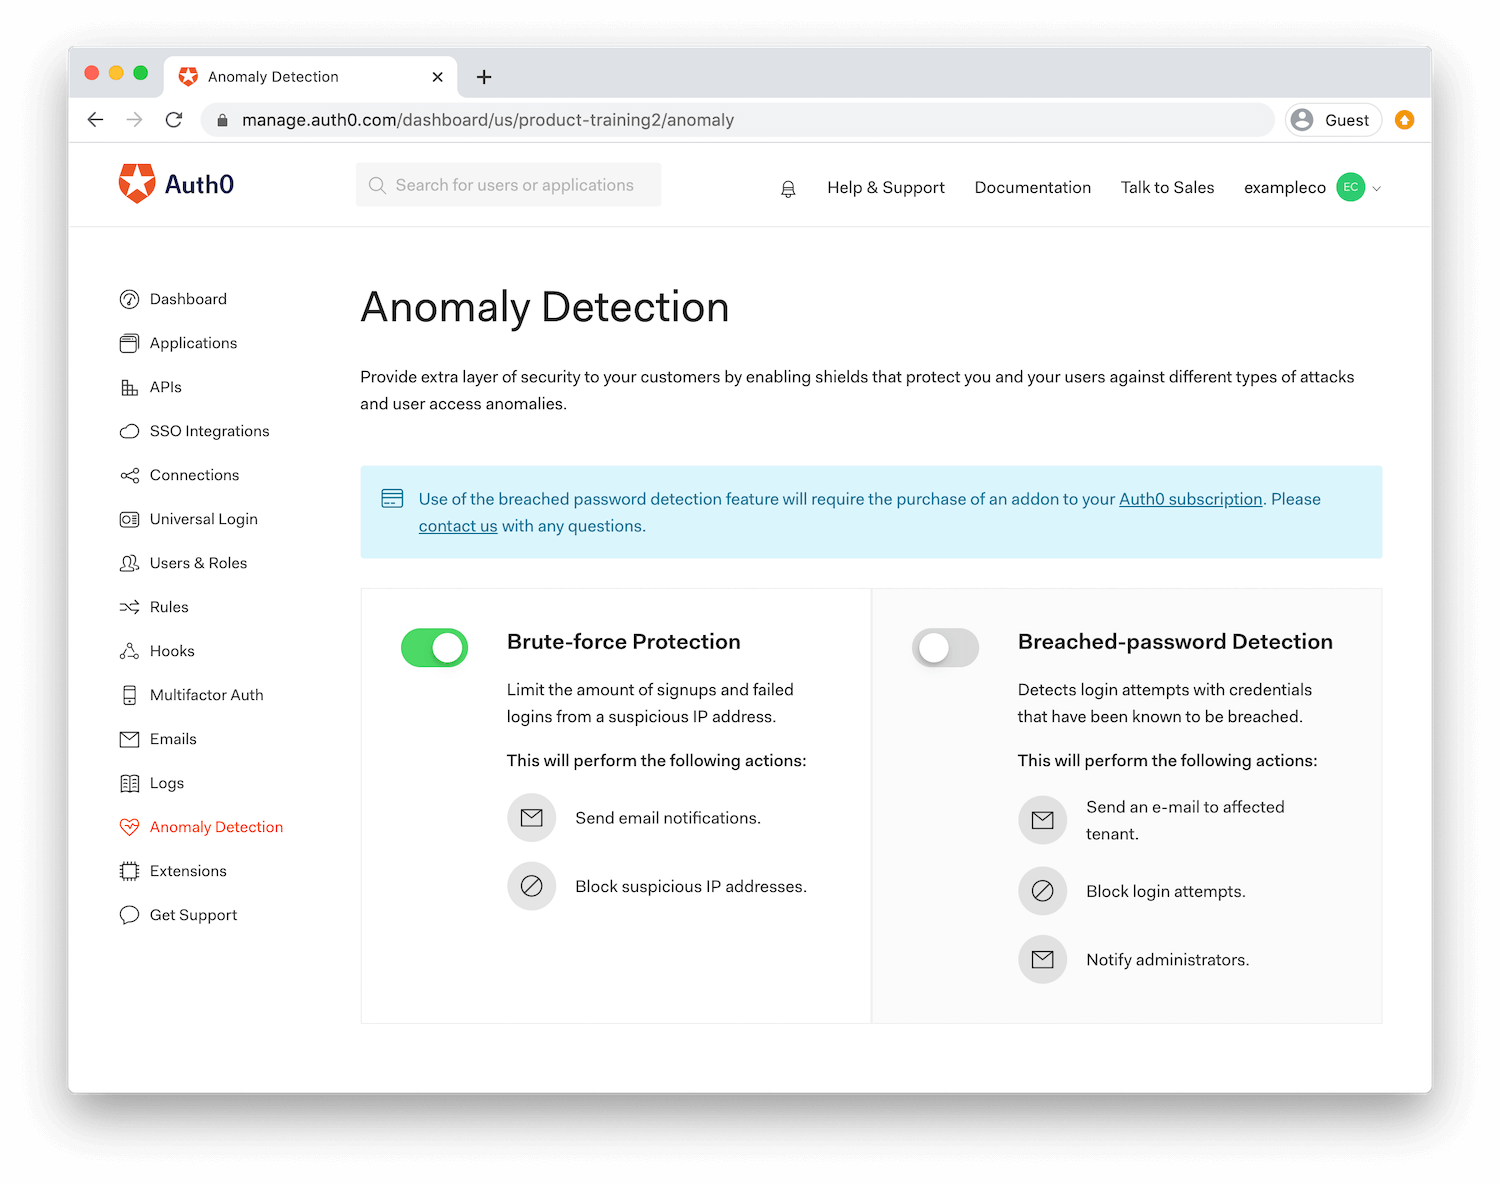 Auth0's Anomaly Detection dashboard